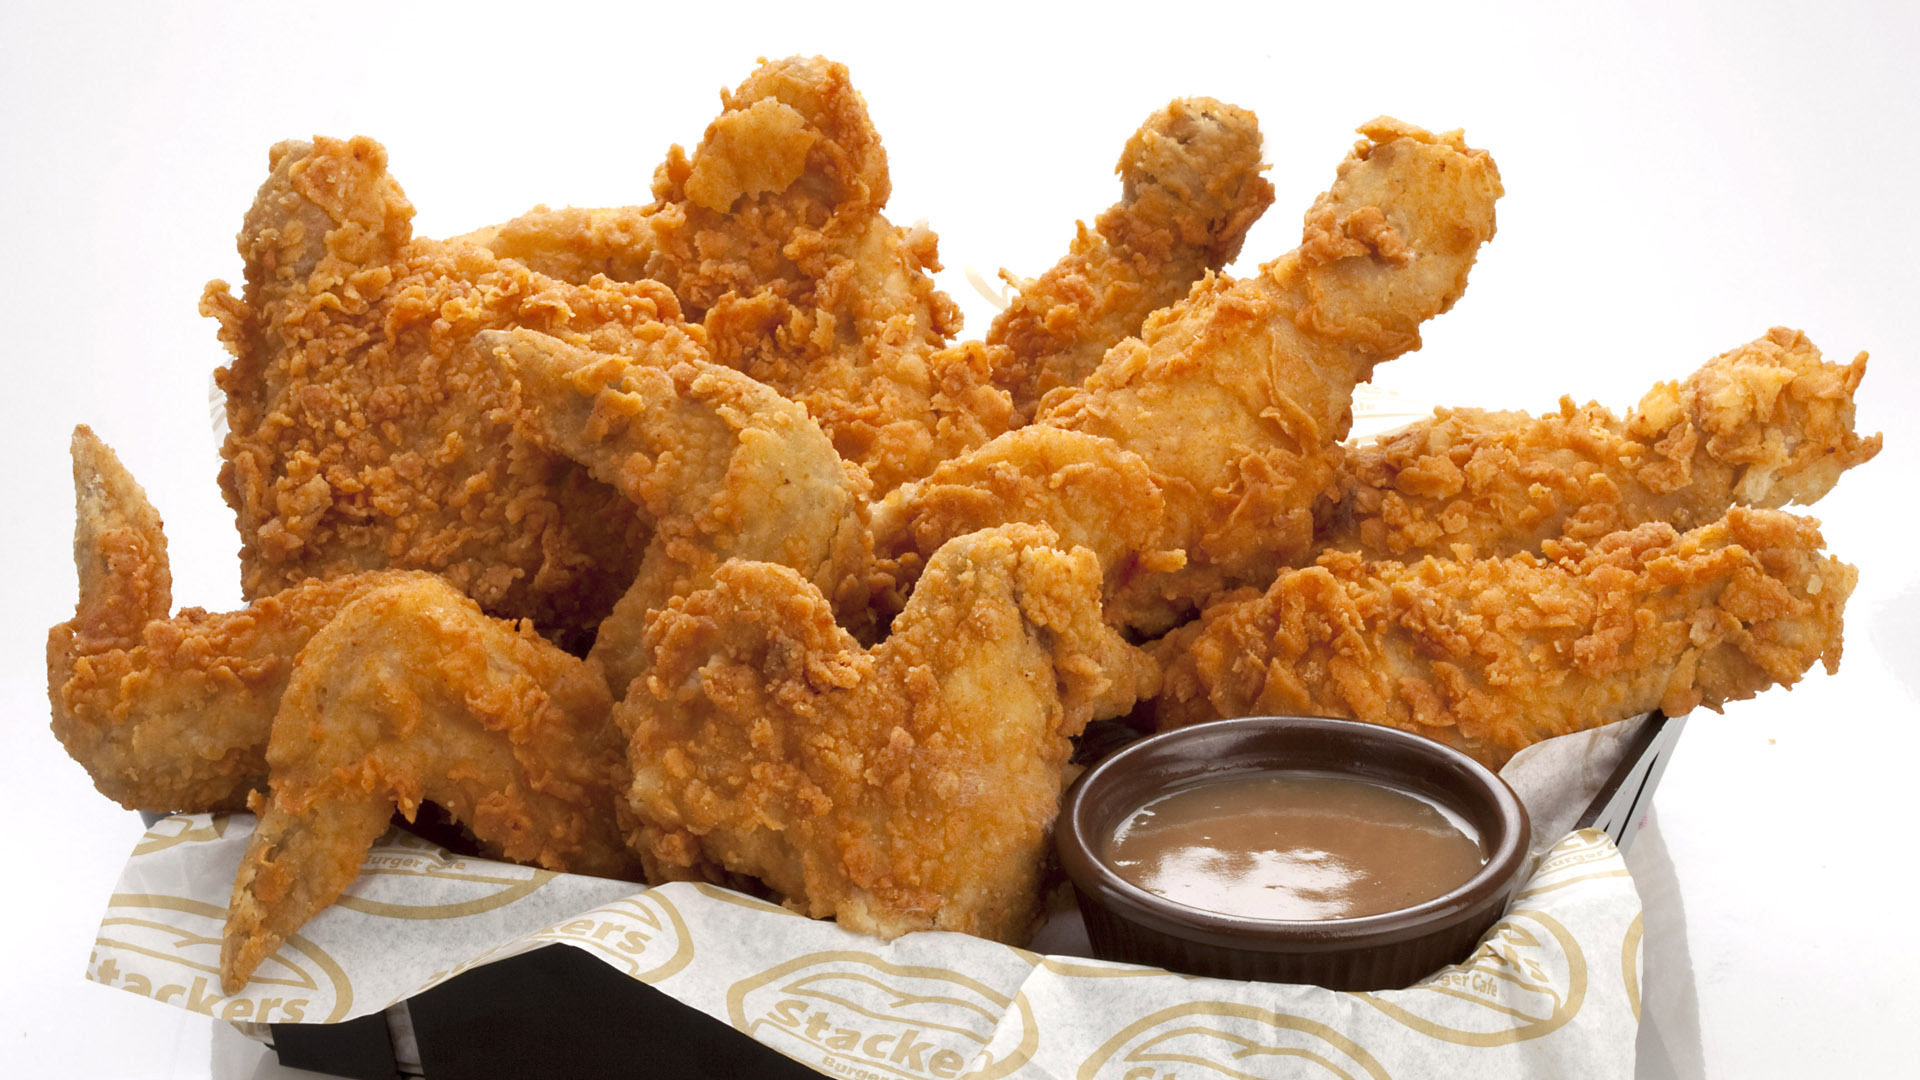 Fried Chicken Wallpapers Hq